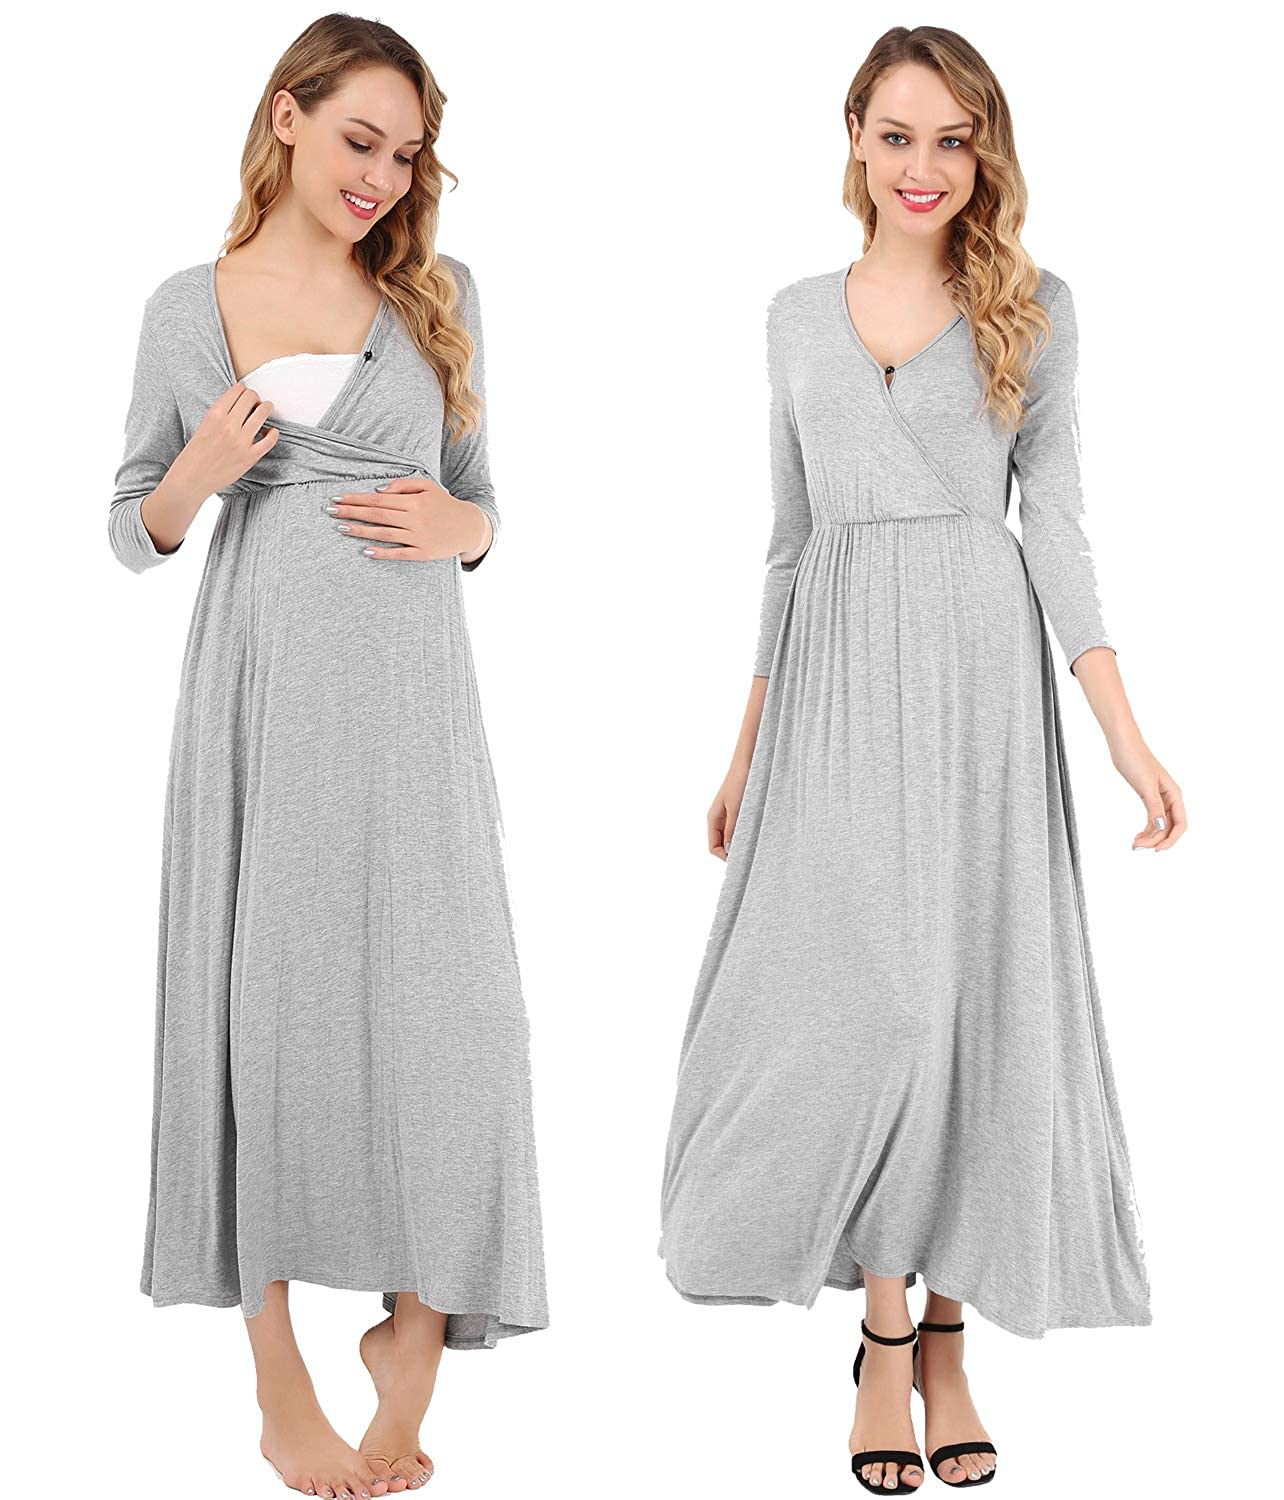 FISOUL Women's Maternity Dress for Photography 3/4 Sleeves V Neck Ruched Nursing Maxi Dress S-XXL